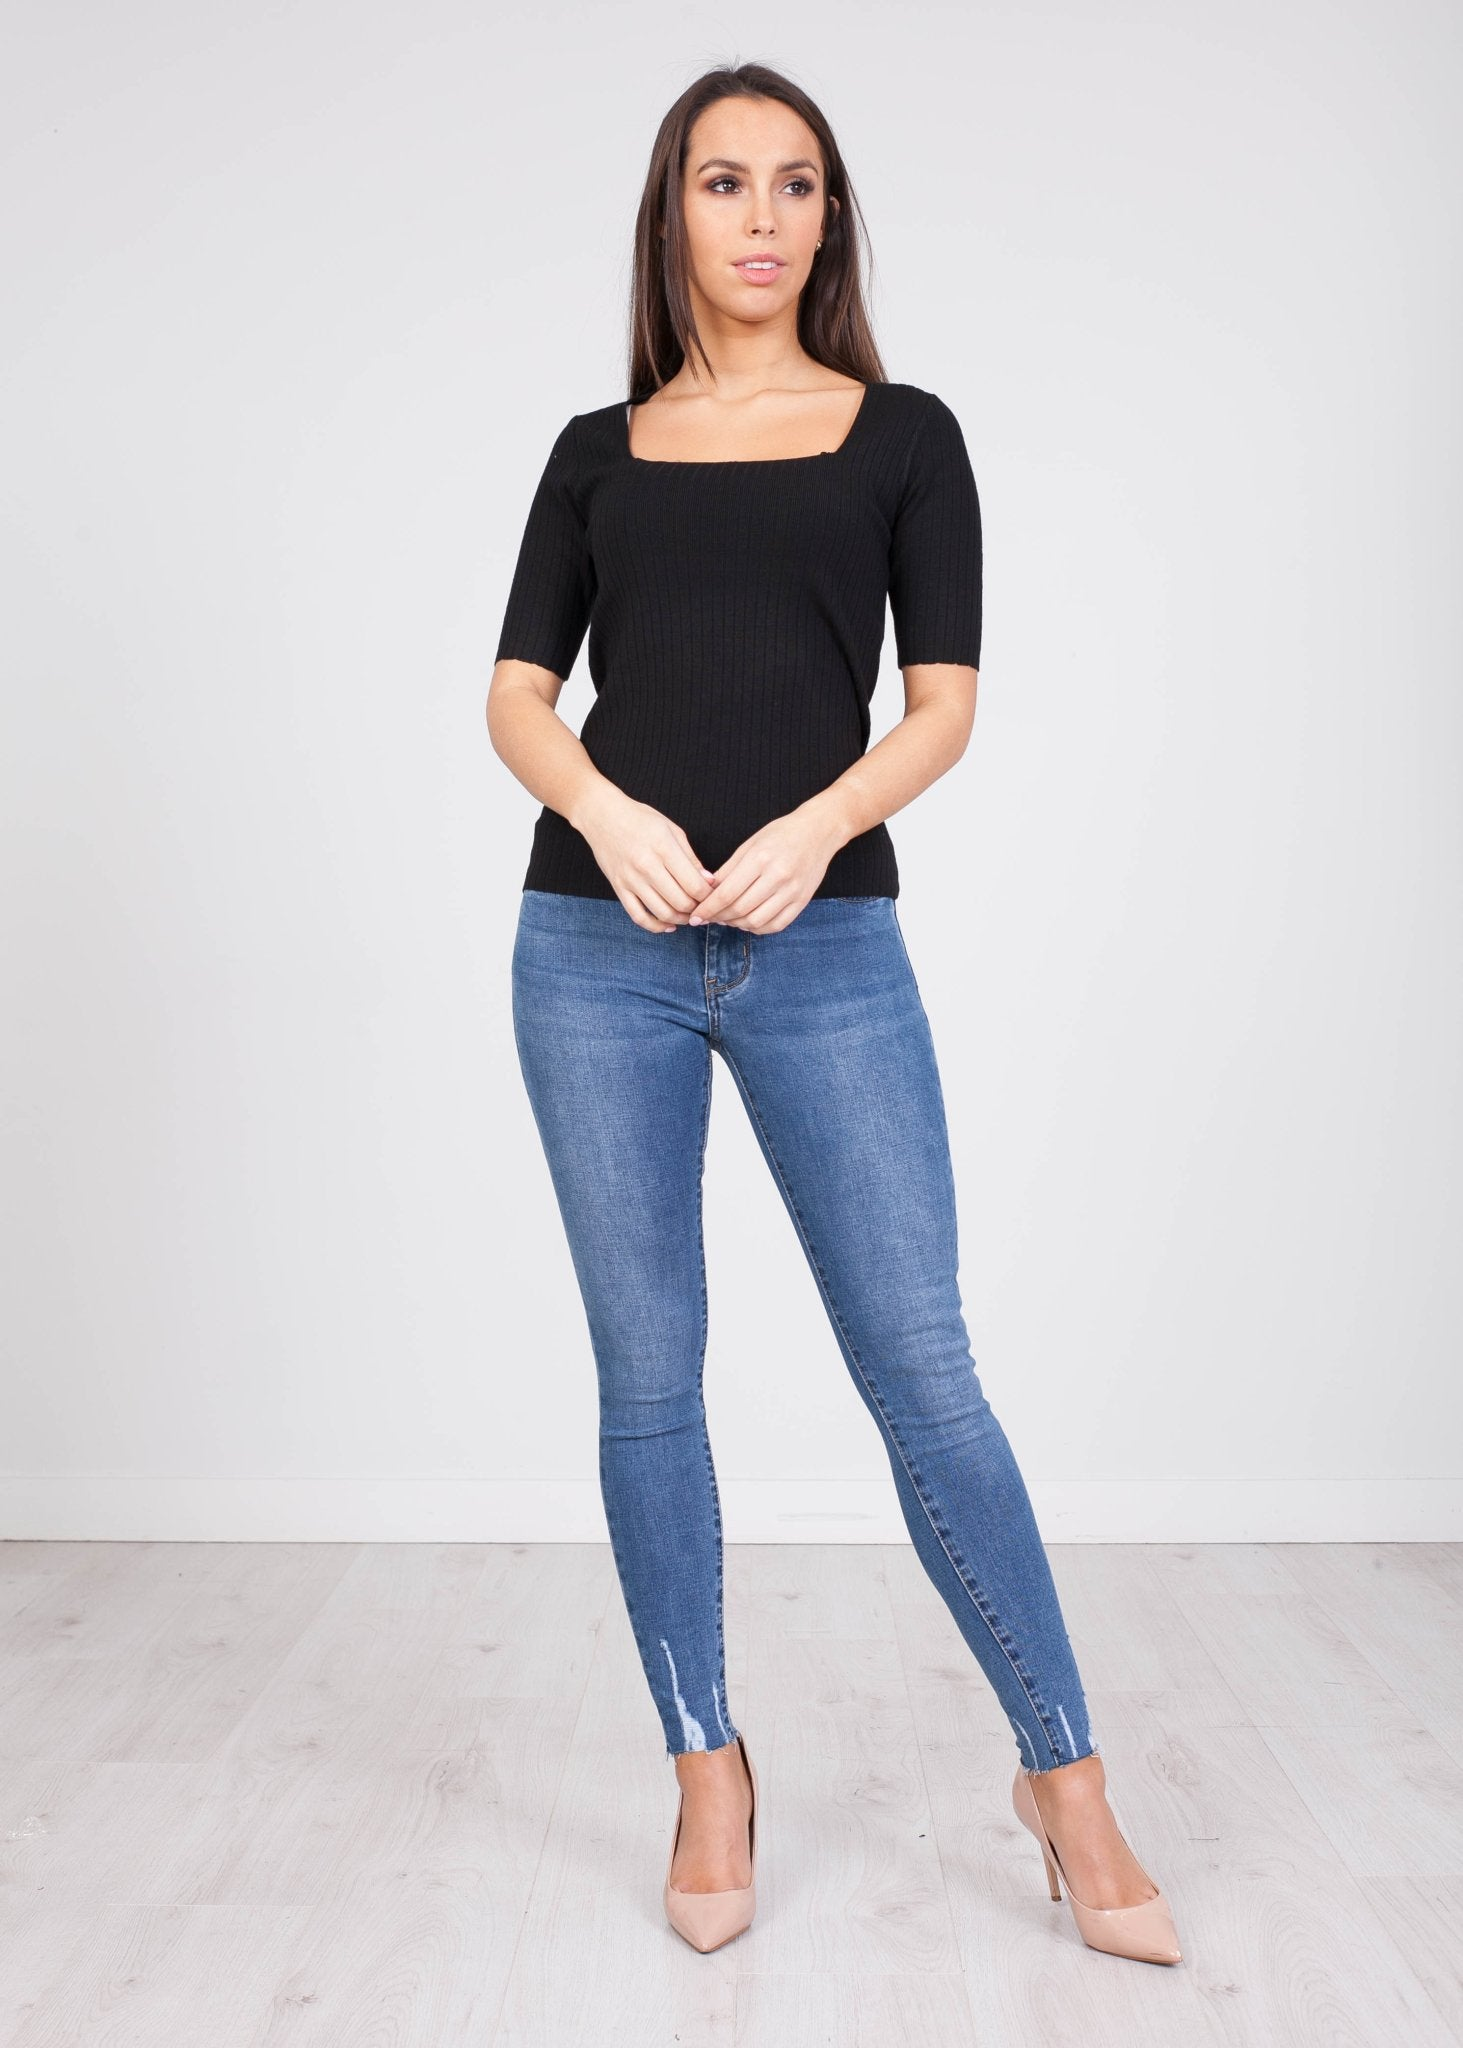 Frankie Black Ribbed Top - The Walk in Wardrobe